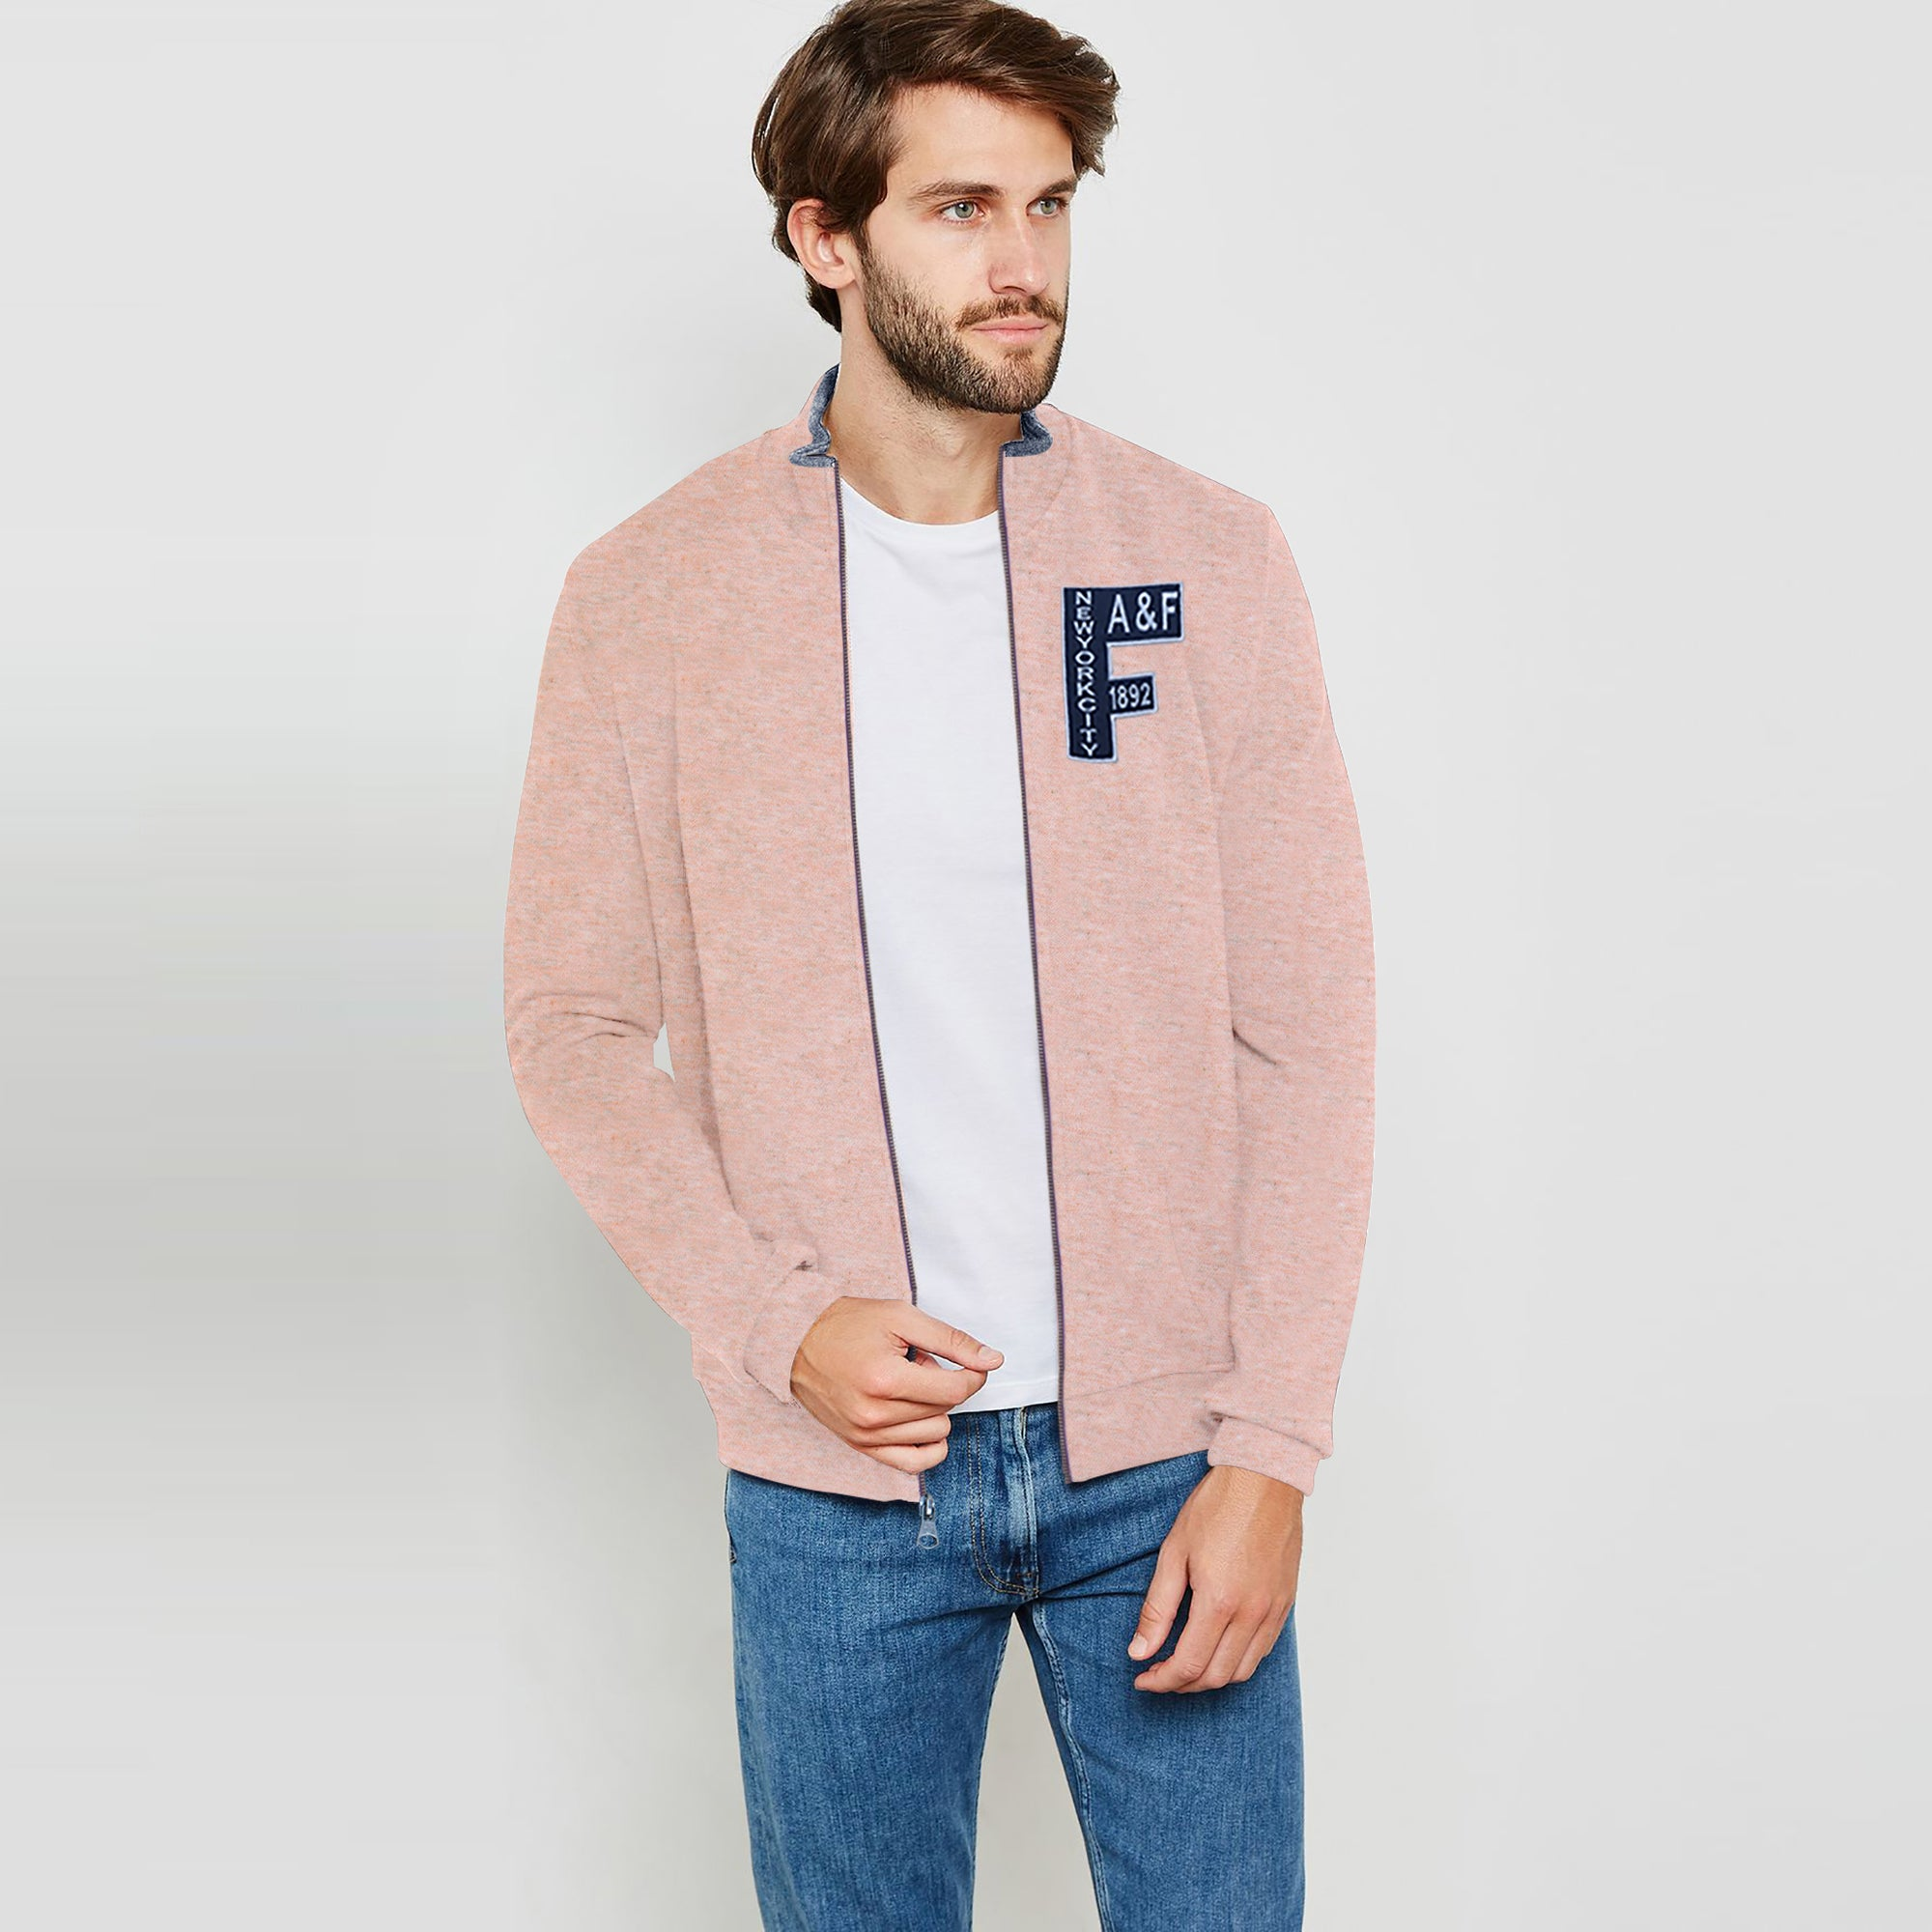 A&F Fleece Full Zipper Mock Neck Jacket For Men-Light Peach Melange-BE7504